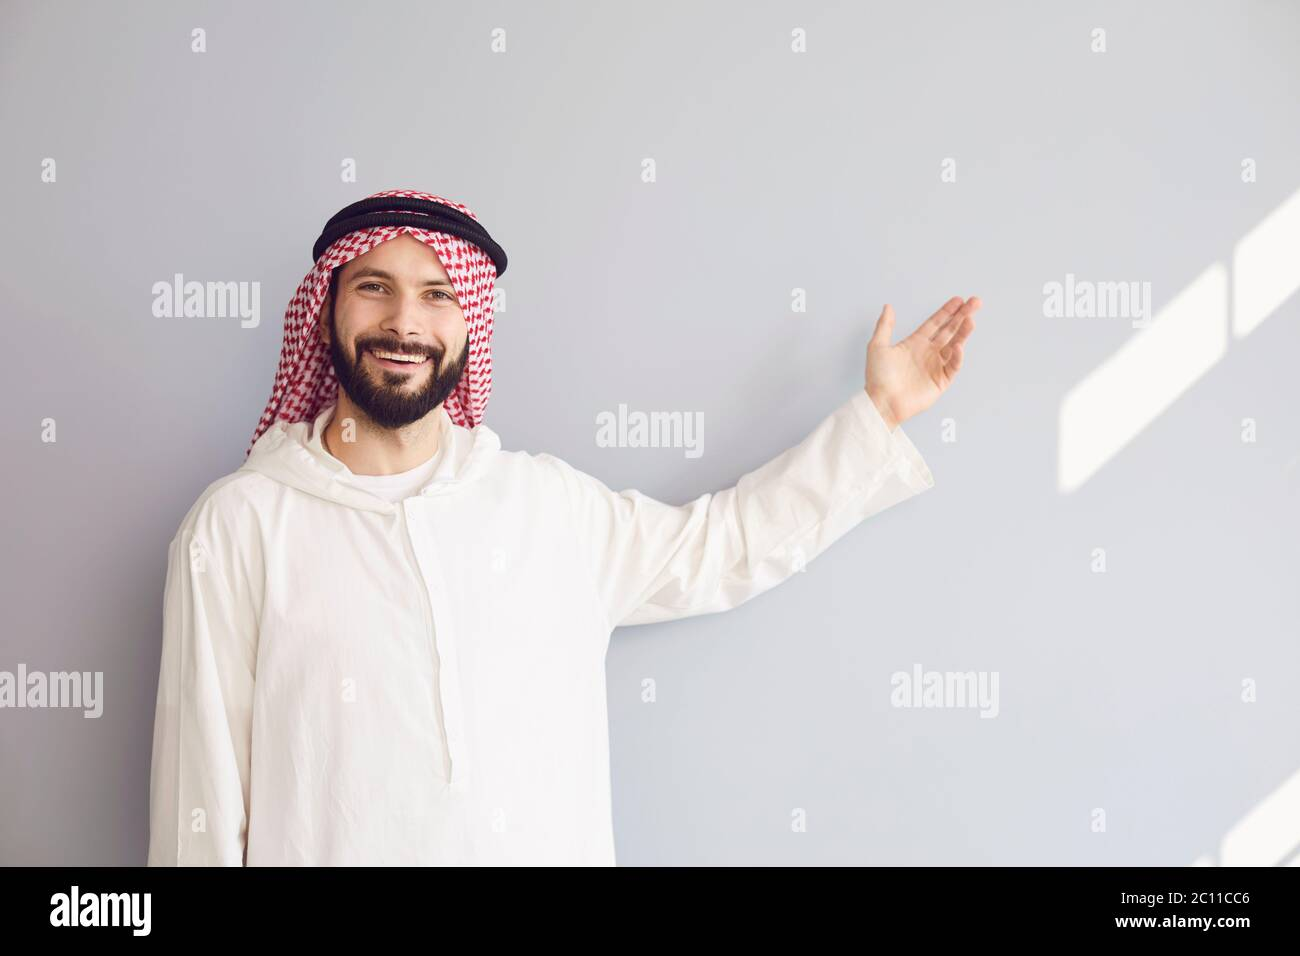 Attractive smiling arab man points his hand to a gray background for text. Stock Photo